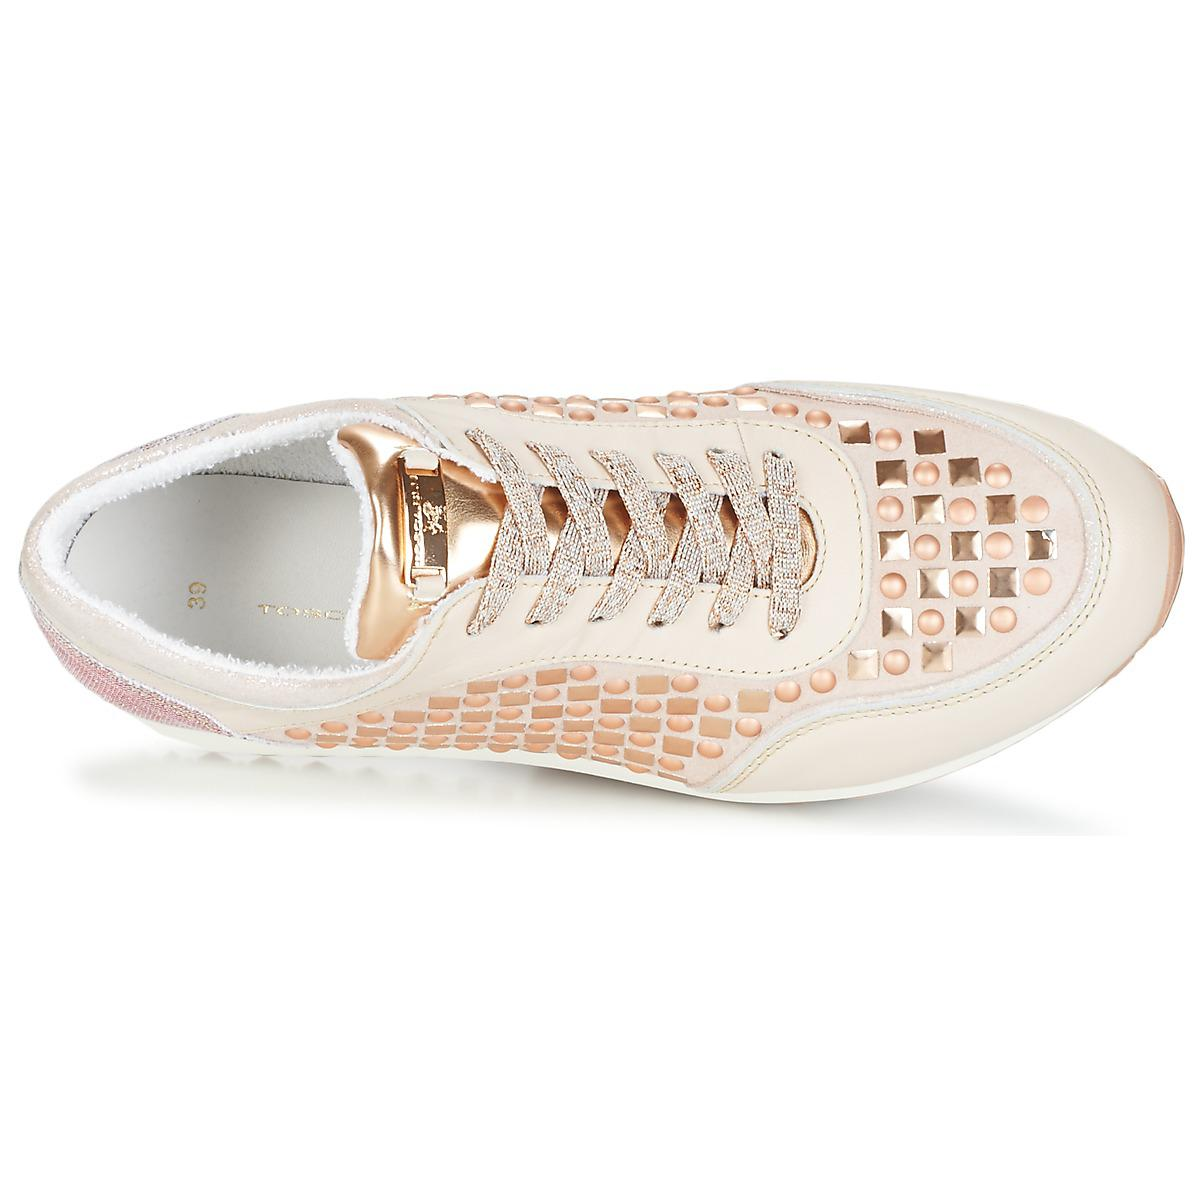 Tosca Blu Leather Diaspro Women's Shoes (trainers) In Pink